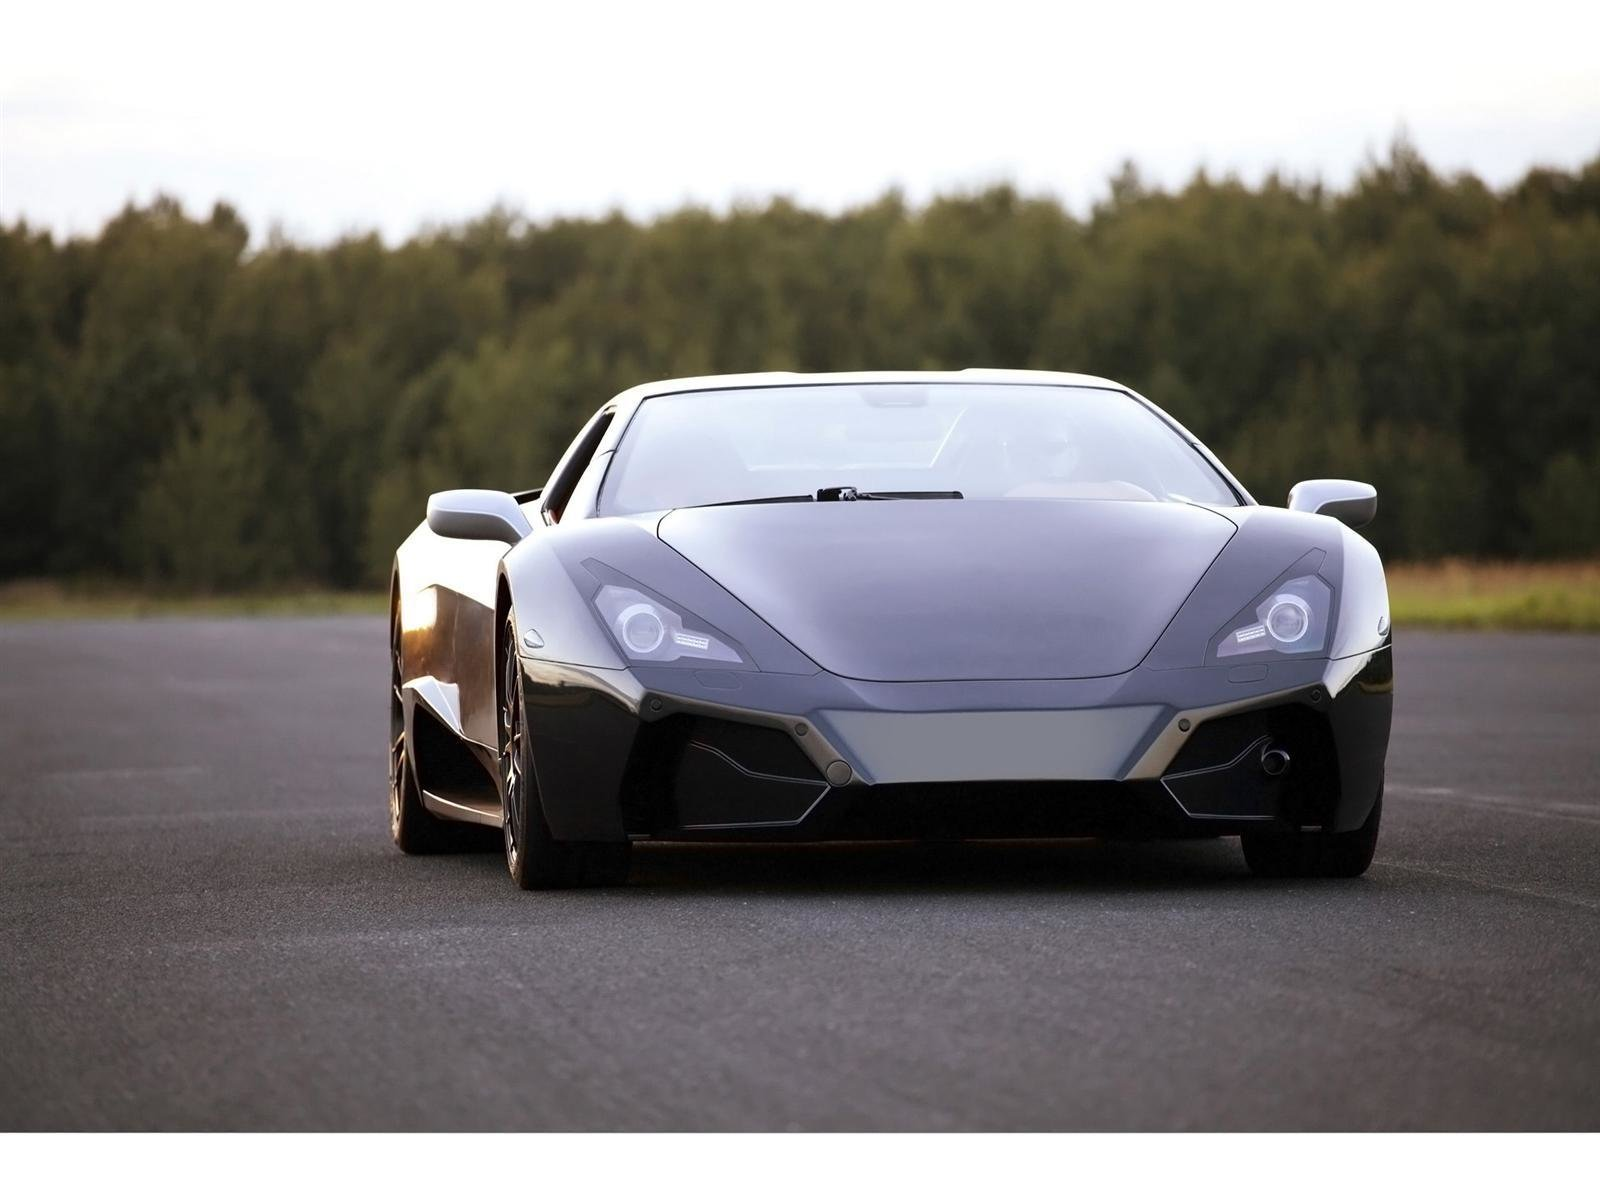 New 2012 Arrinera Supercar Image On This Month